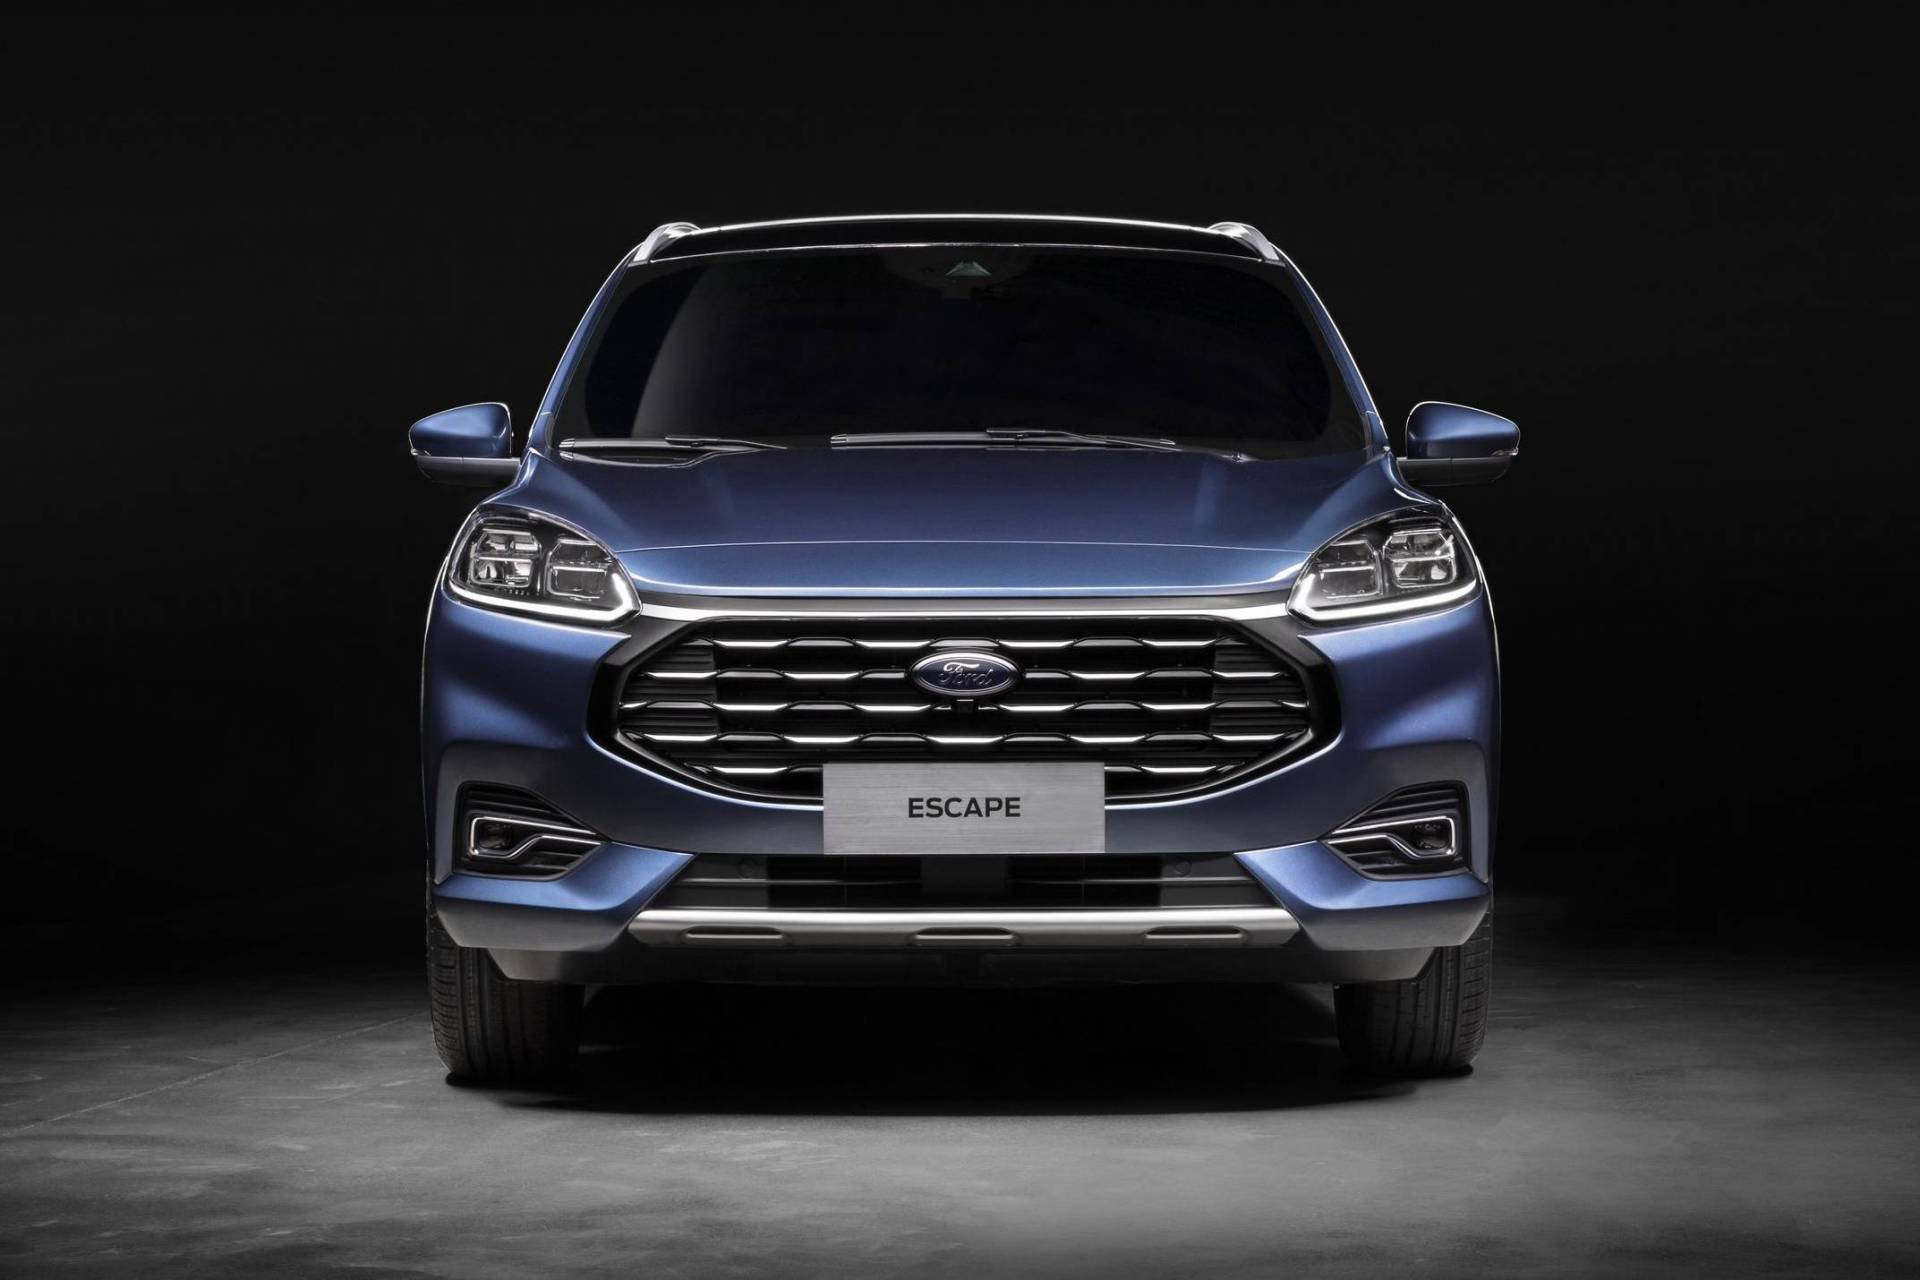 2020-ford-escape-china-3.jpeg